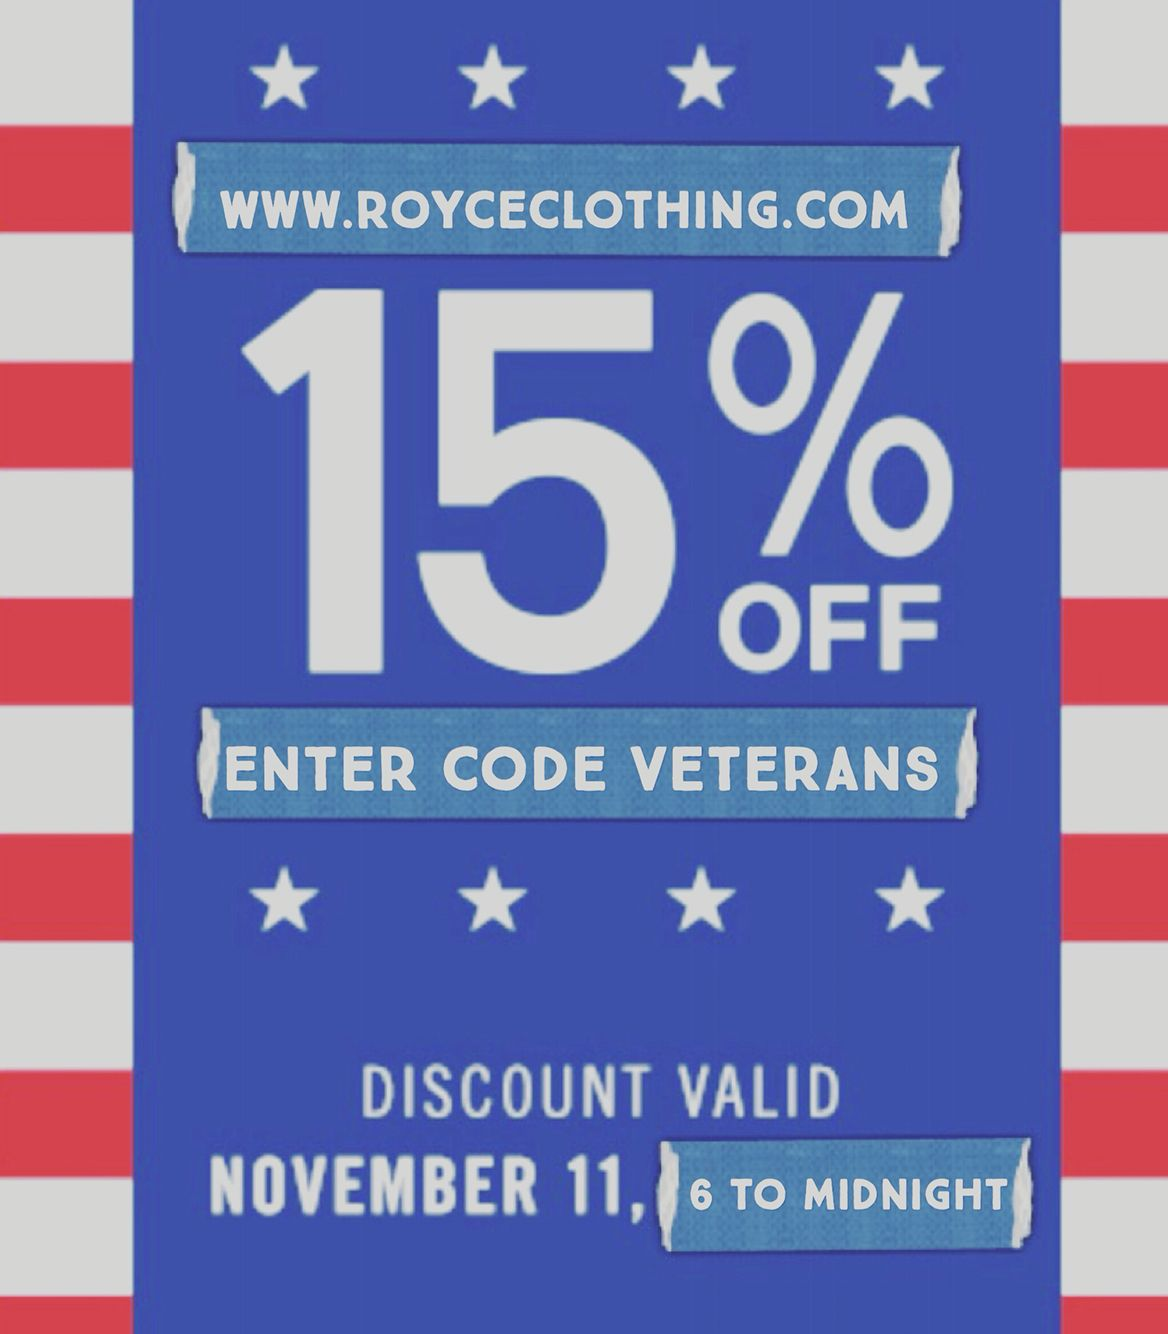 Happy Veterans Day 15% off starts now❗️#freeshipping #royceclothing